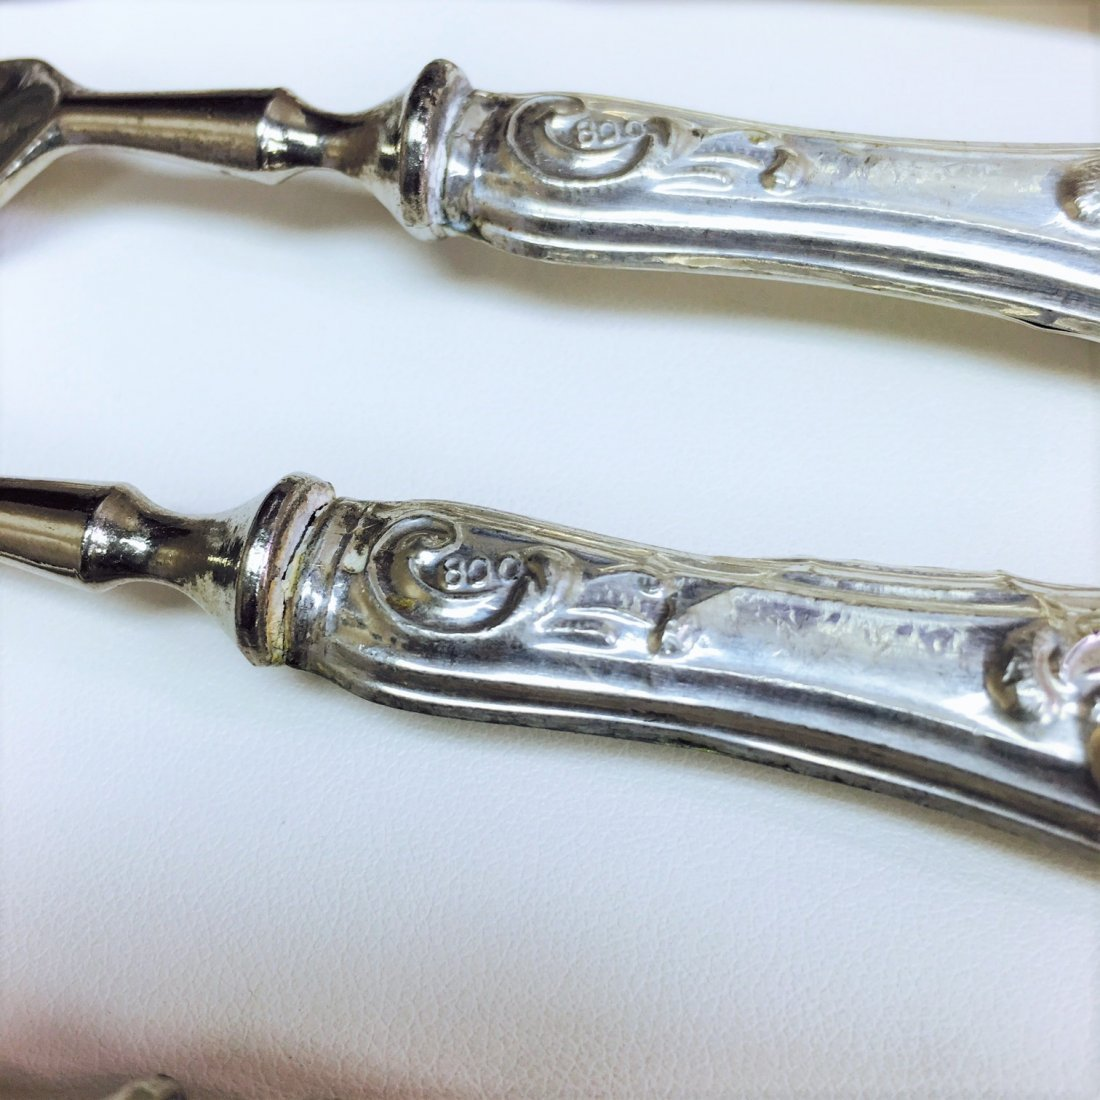 Antique and Very Rare, 800 Sterling Silver Spoon Set - 2